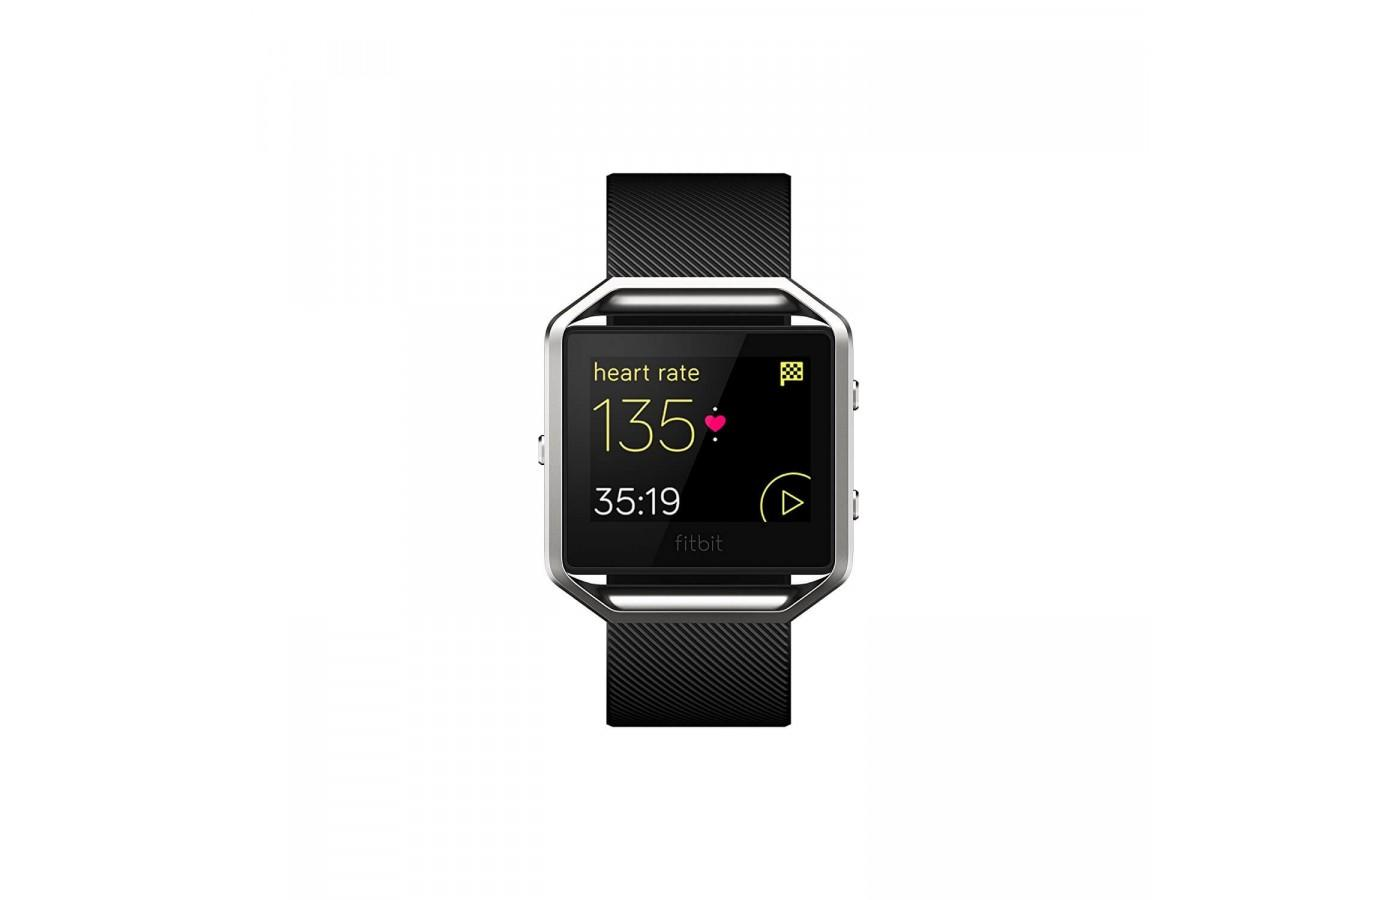 Fitbit Blaze has an easy to read screen and can be easily navigated through the touchscreen